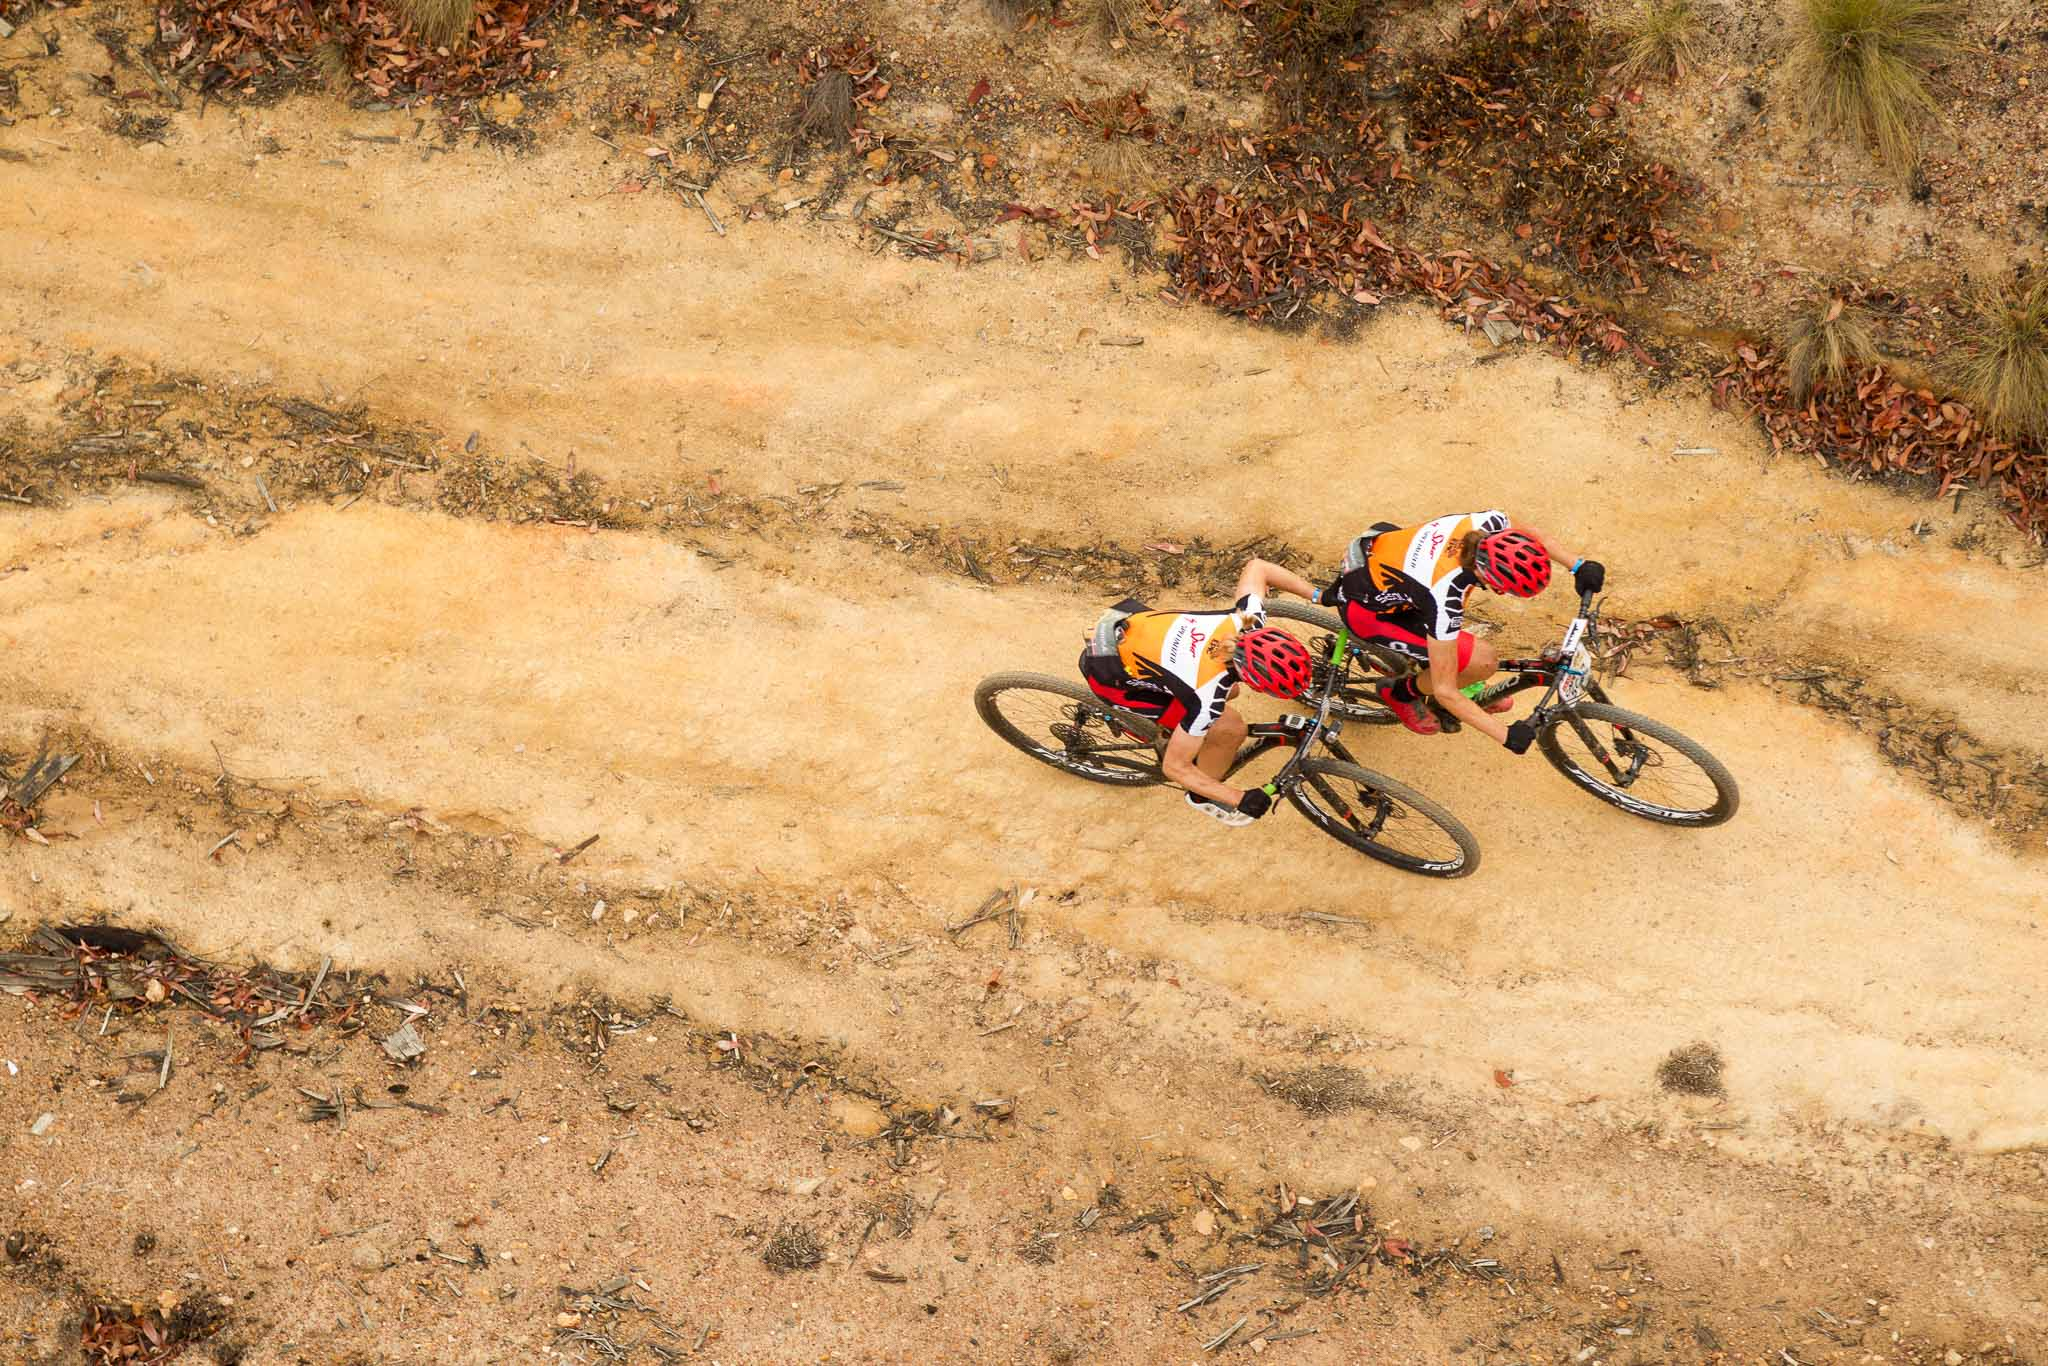 Annika Langvad of Spur-Specialized pushes teammate Ariane Kleinhans during stage 6 of the 2016 Absa Cape Epic Mountain Bike stage race from Boschendal in Stellenbosch, South Africa on the 19th March 2015 Photo by Gary Perkin/Cape Epic/SPORTZPICS PLEASE ENSURE THE APPROPRIATE CREDIT IS GIVEN TO THE PHOTOGRAPHER AND SPORTZPICS ALONG WITH THE ABSA CAPE EPIC ace2016